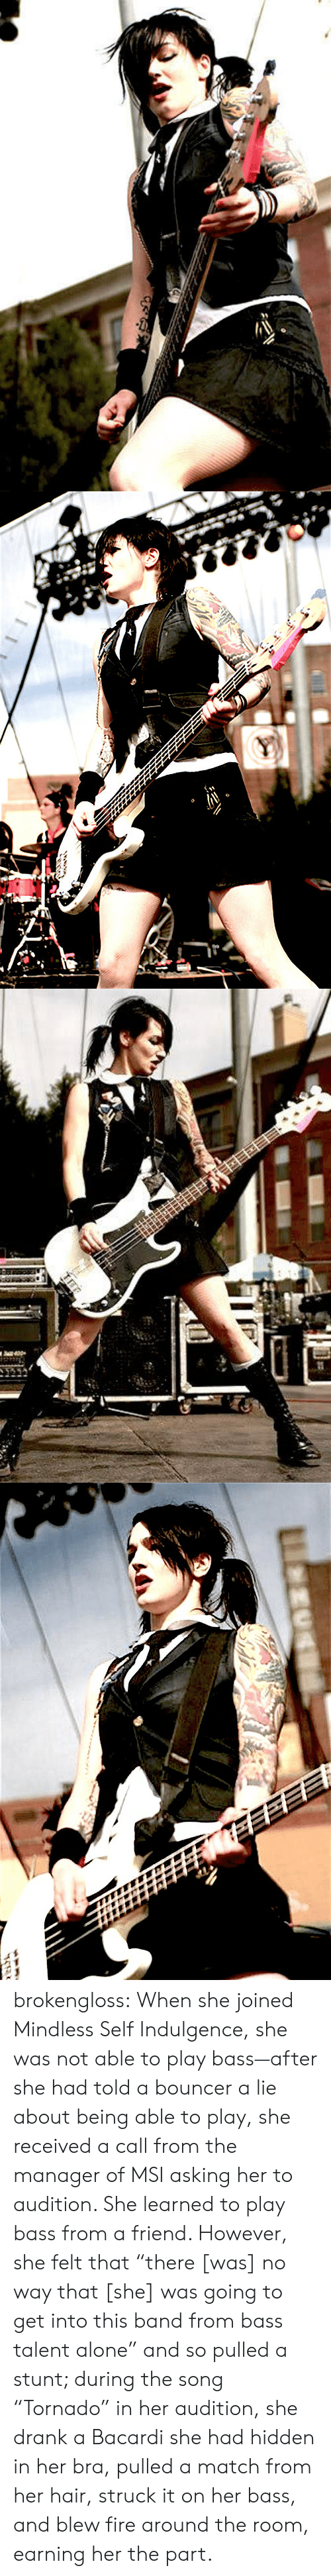 """stunt: brokengloss: When she joined Mindless Self Indulgence, she was not able to play bass—after she had told a bouncer a lie about being able to play, she received a call from the manager of MSI asking her to audition. She learned to play bass from a friend. However, she felt that """"there [was] no way that [she] was going to get into this band from bass talent alone"""" and so pulled a stunt; during the song """"Tornado"""" in her audition, she drank a Bacardi she had hidden in her bra, pulled a match from her hair, struck it on her bass, and blew fire around the room, earning her the part."""